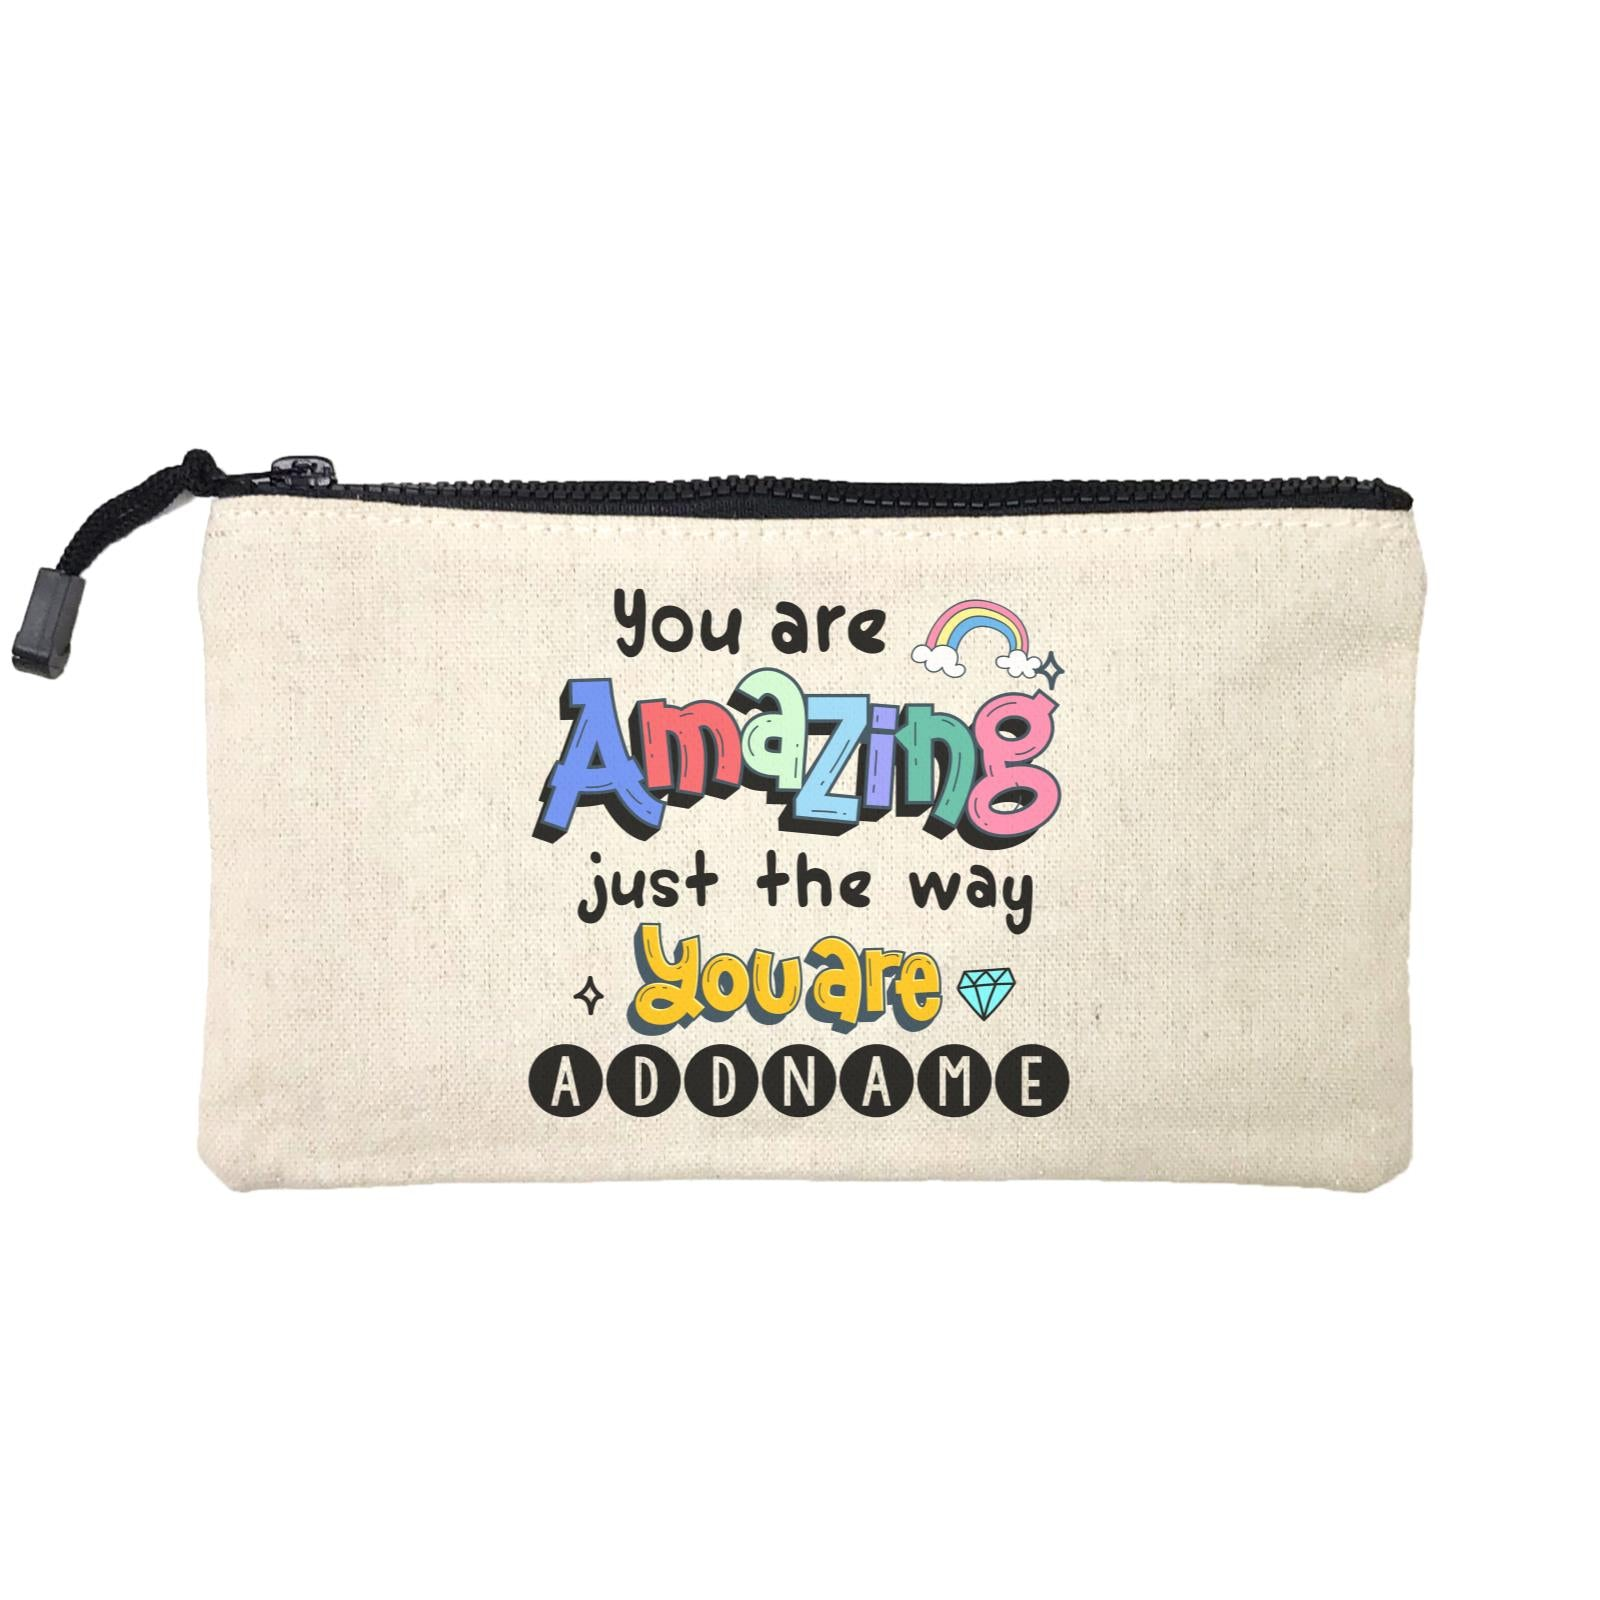 Children's Day Gift Series You Are Amazing Just The Way You Are Addname SP Stationery Pouch